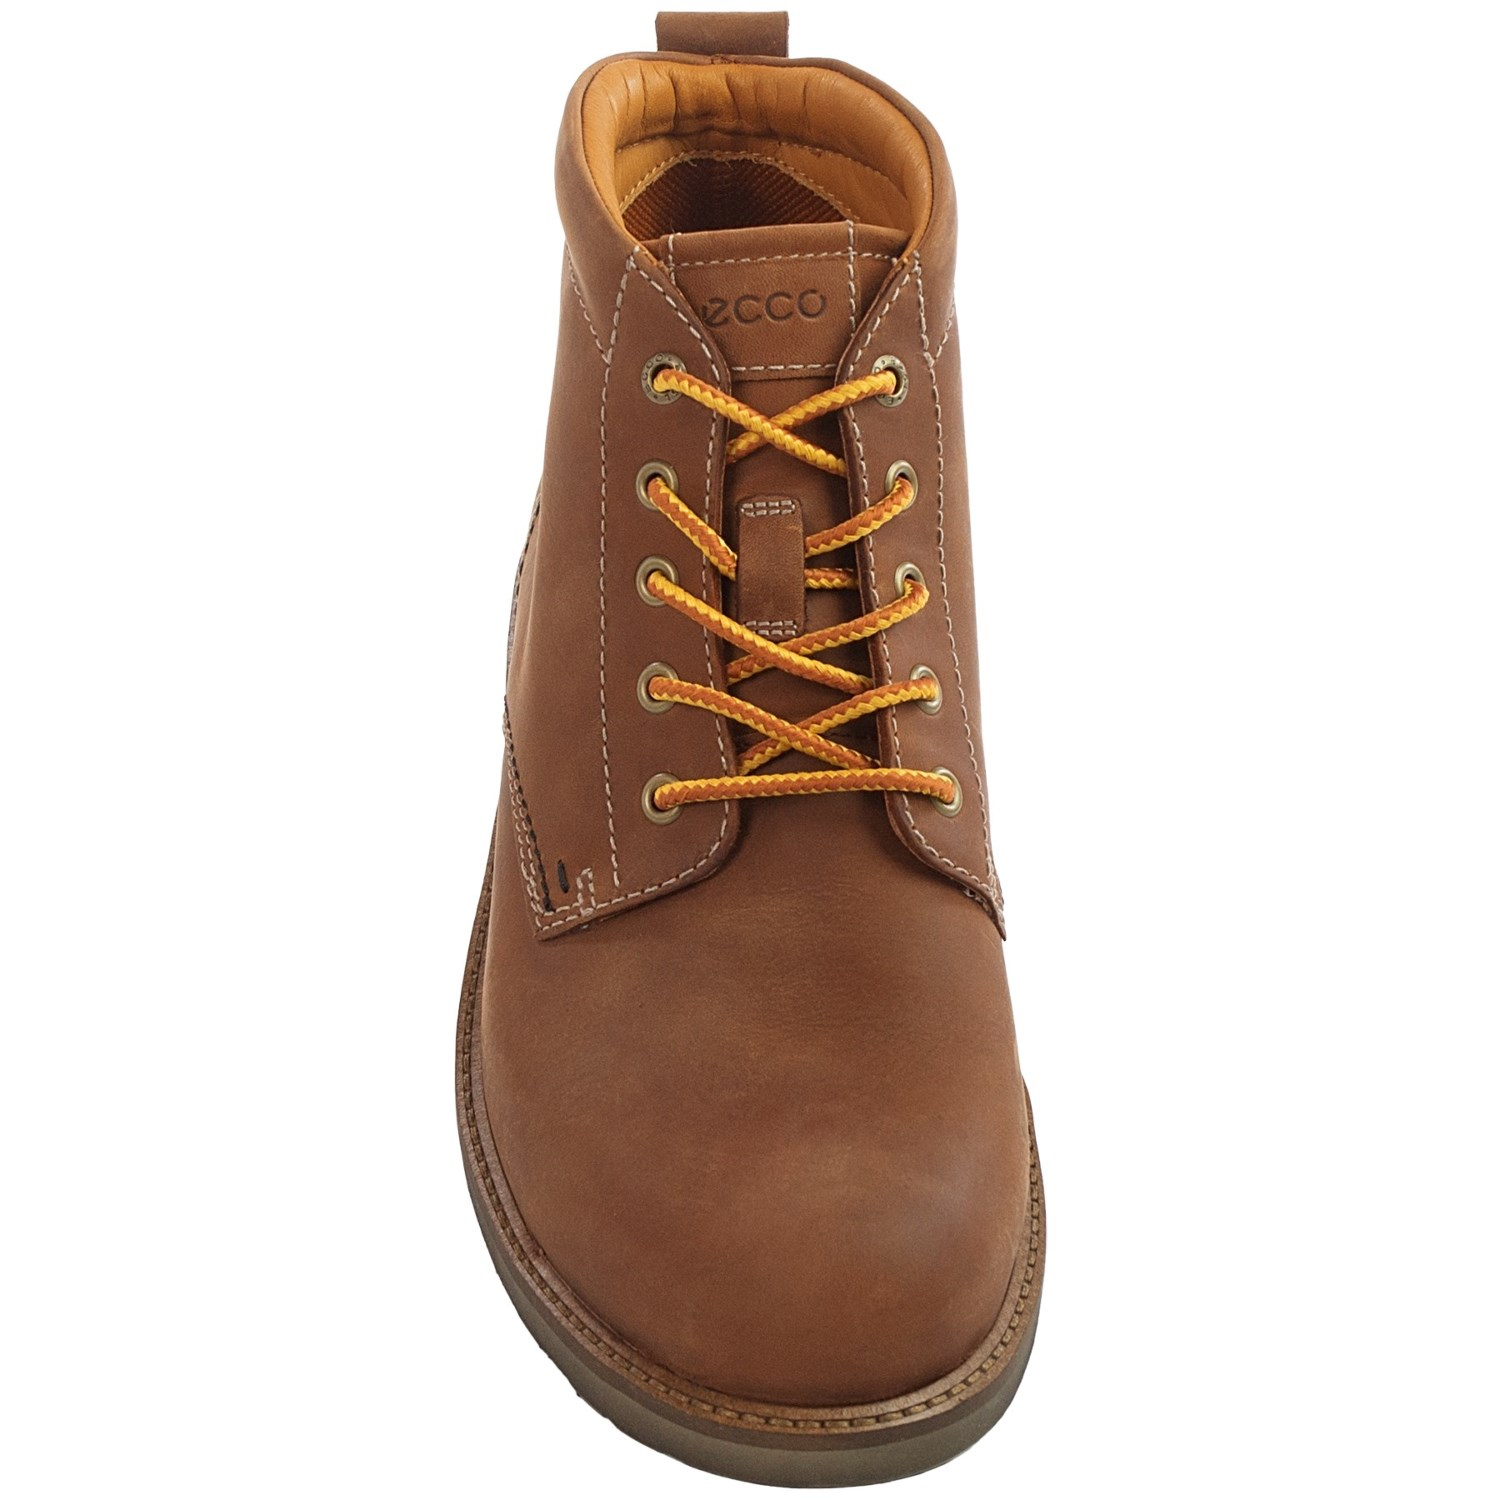 ECCO Holbrok Lace Boots (For Men) - Save 50%